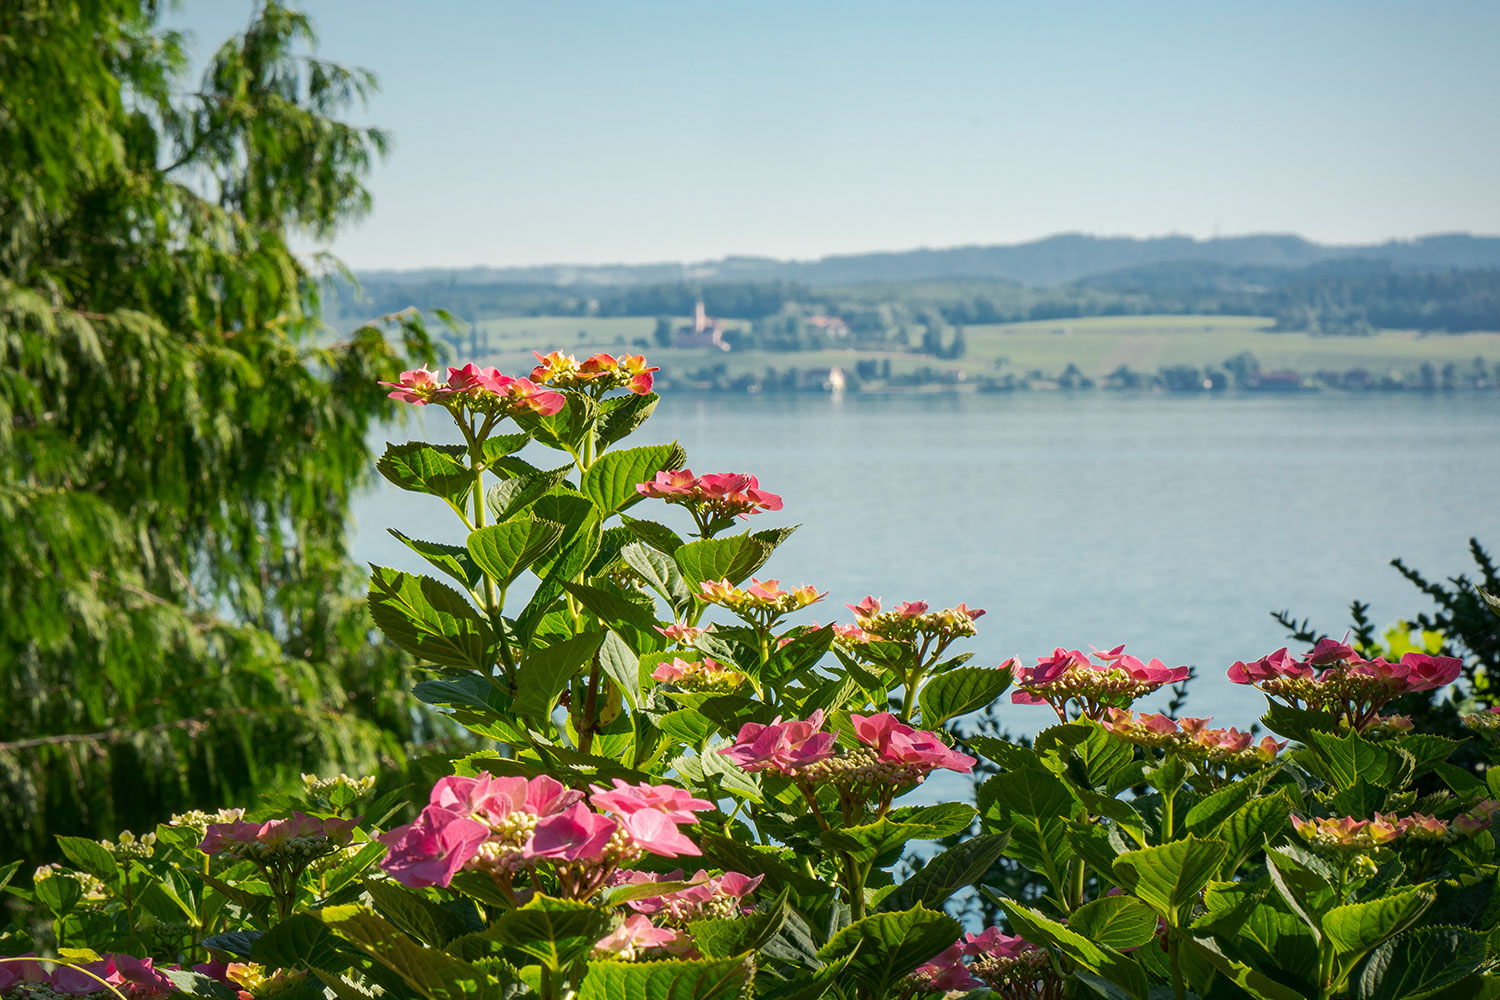 Blumeninsel Mainau am Bodensee